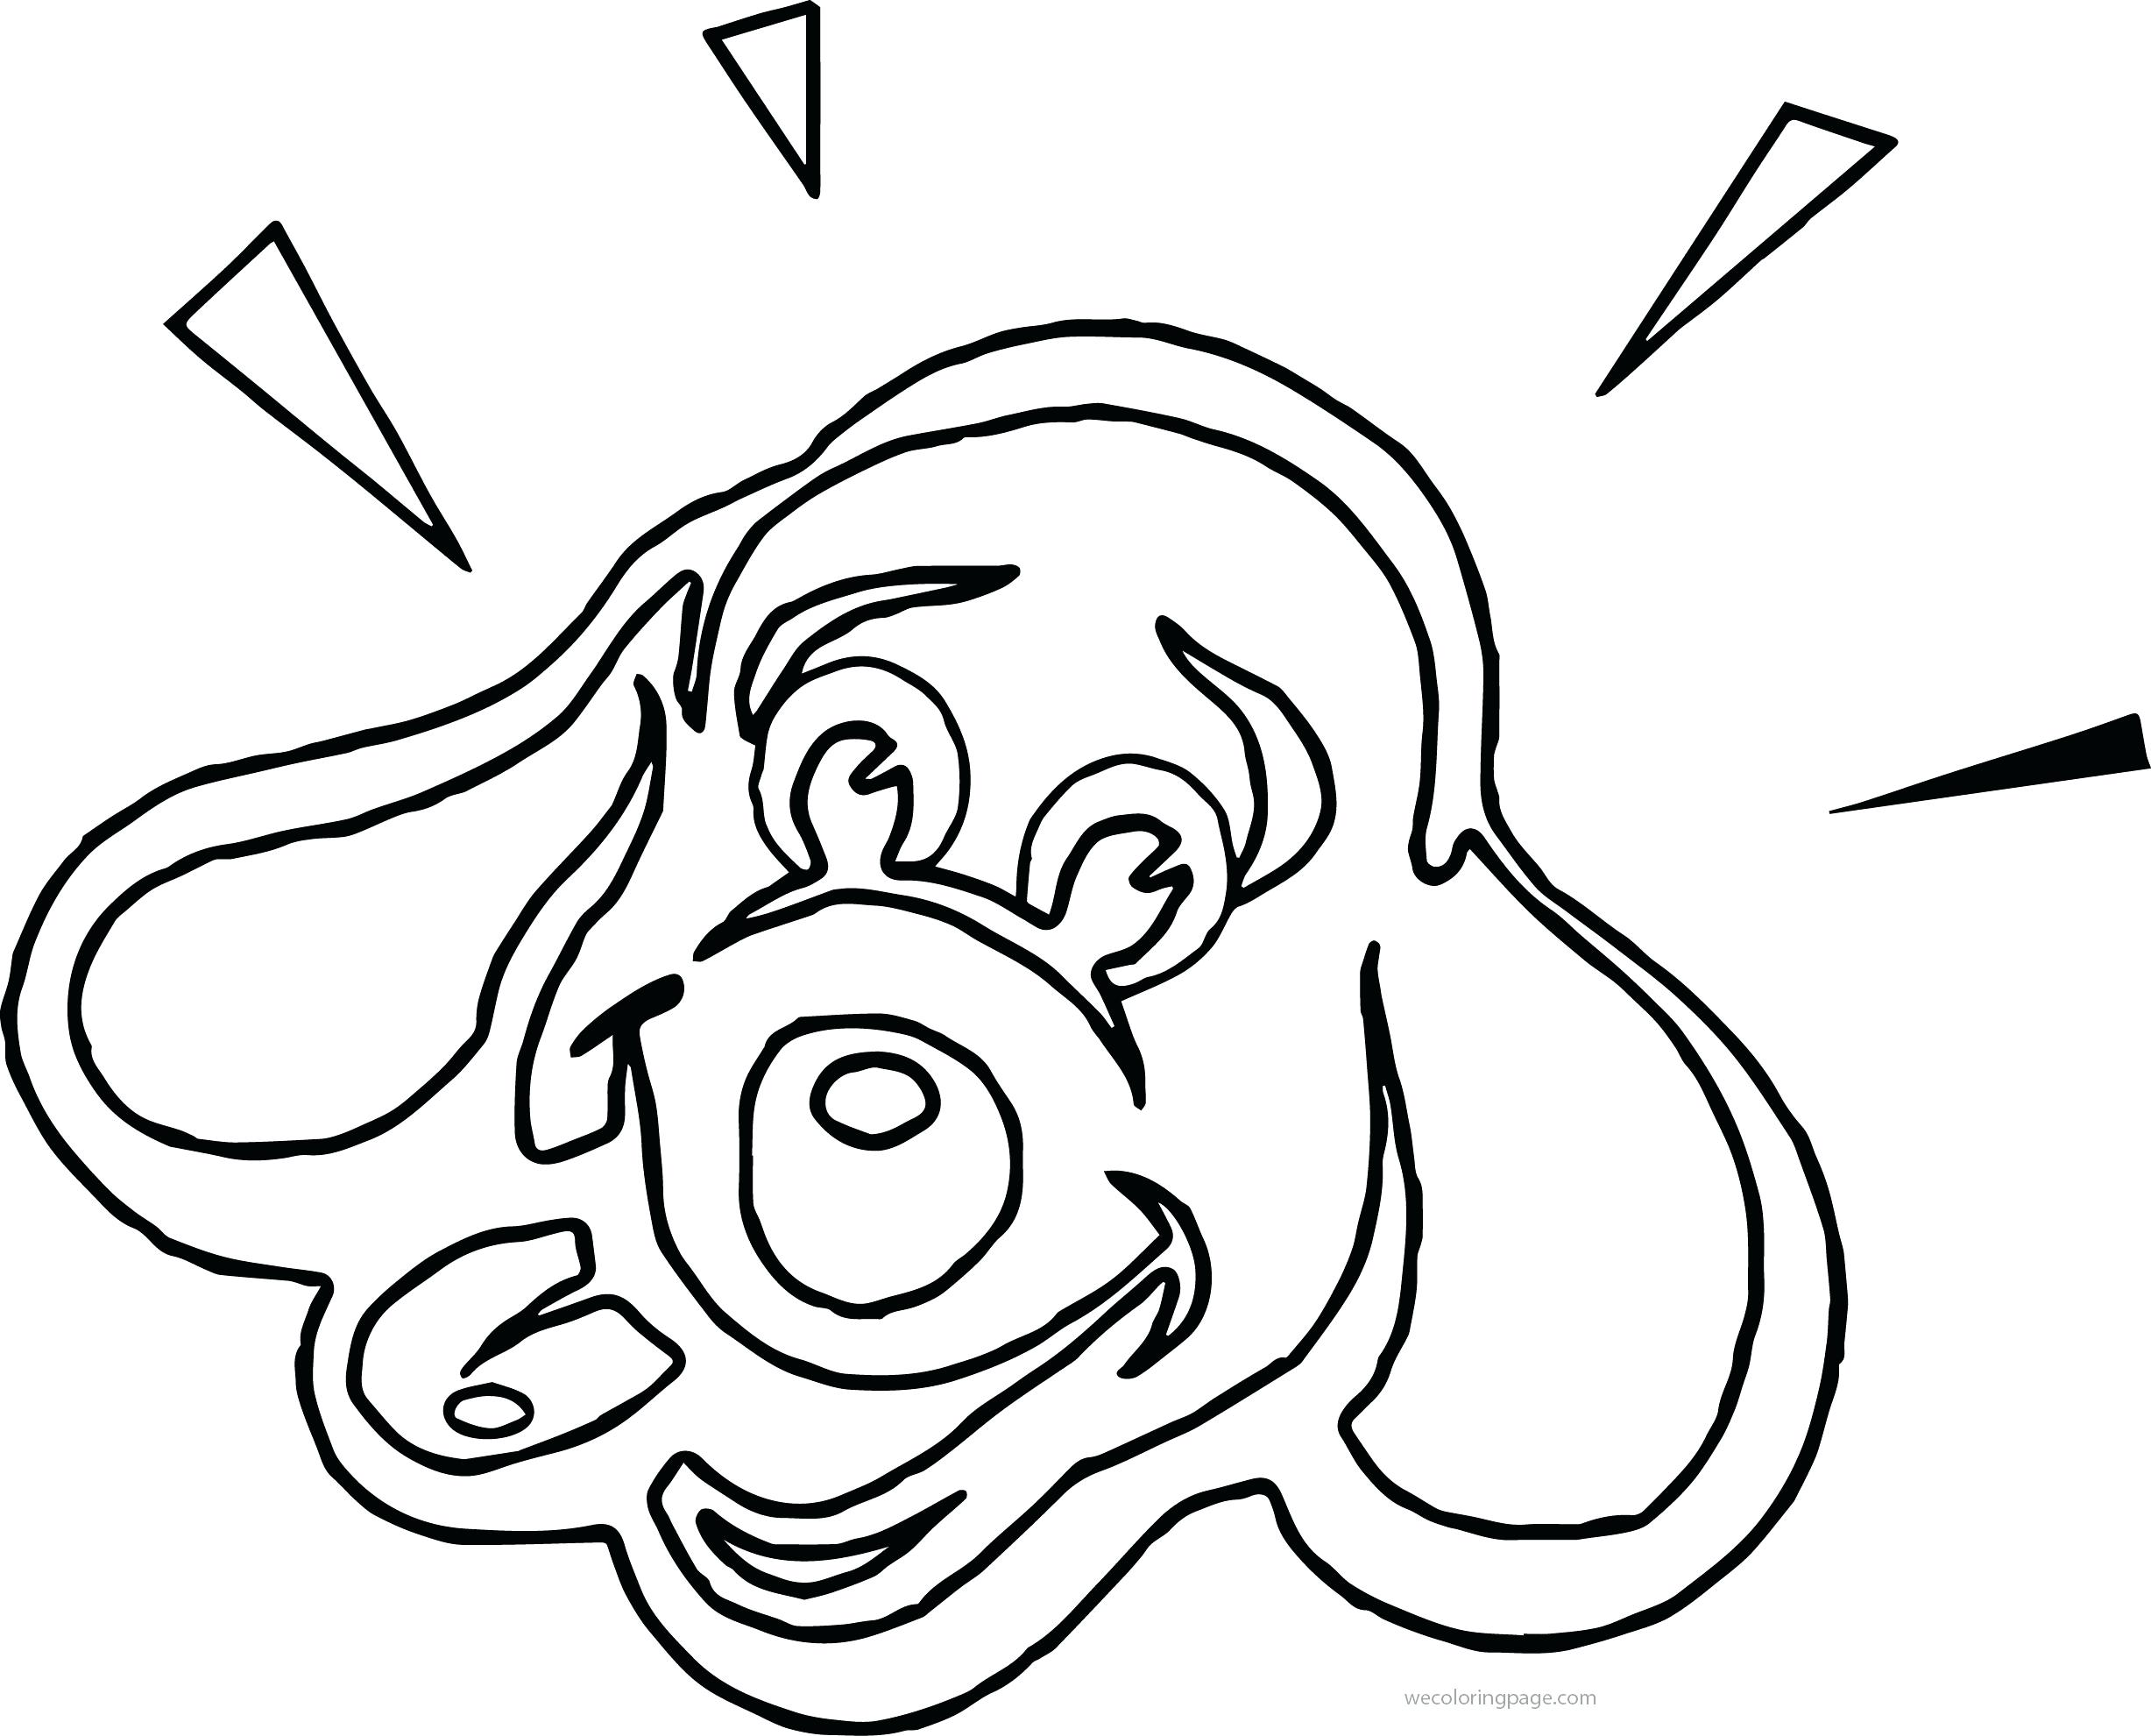 2455x1981 Dog Face Clipart Black And White. Animal Face Drawing Kids Colour